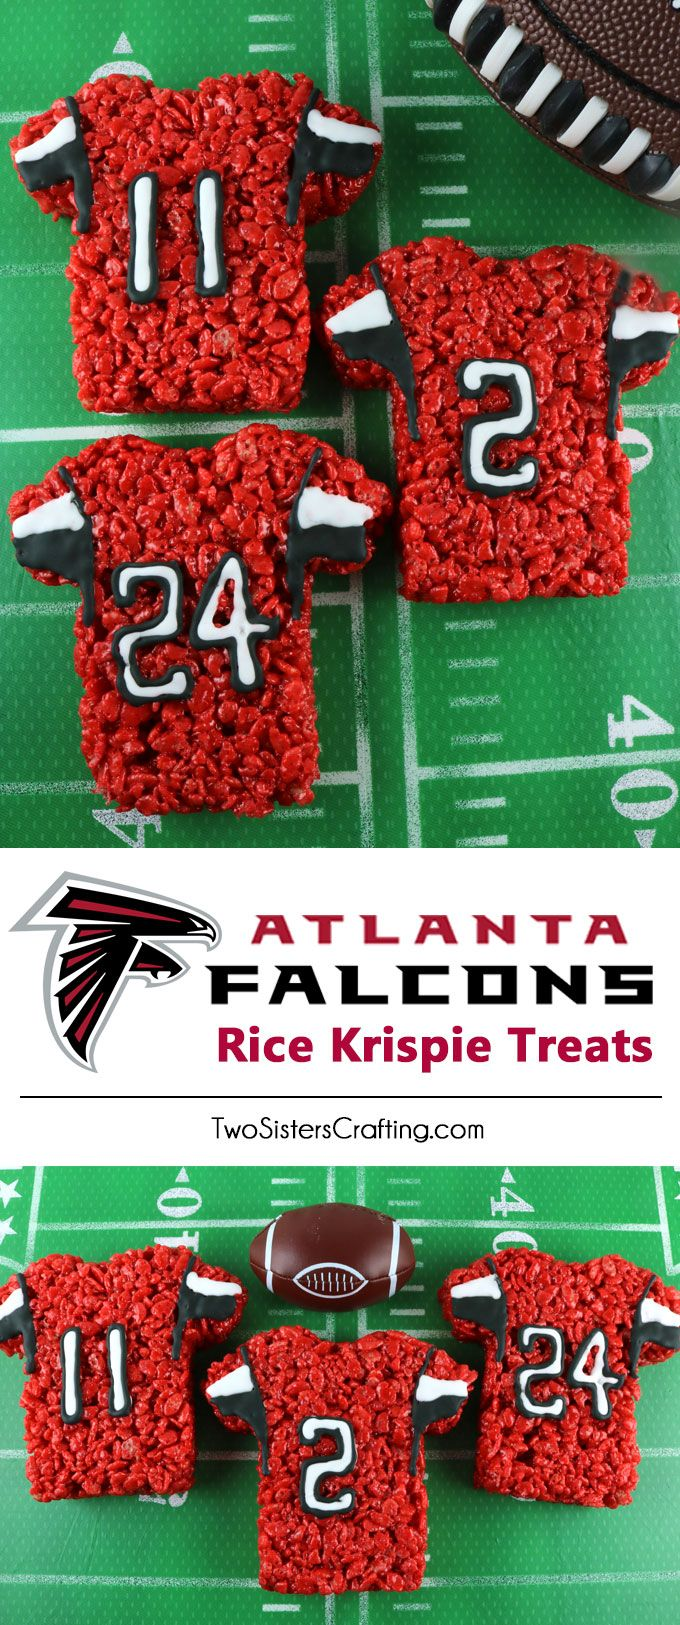 These Atlanta Falcons Rice Krispie Treats Team Jerseys are a fun football dessert for a game day football party, an NFL playoff party, a Super Bowl party or as a special snack for the Atlanta Falcons fans in your life. Go Falcons! And follow us for more fun Super Bowl Food Ideas.